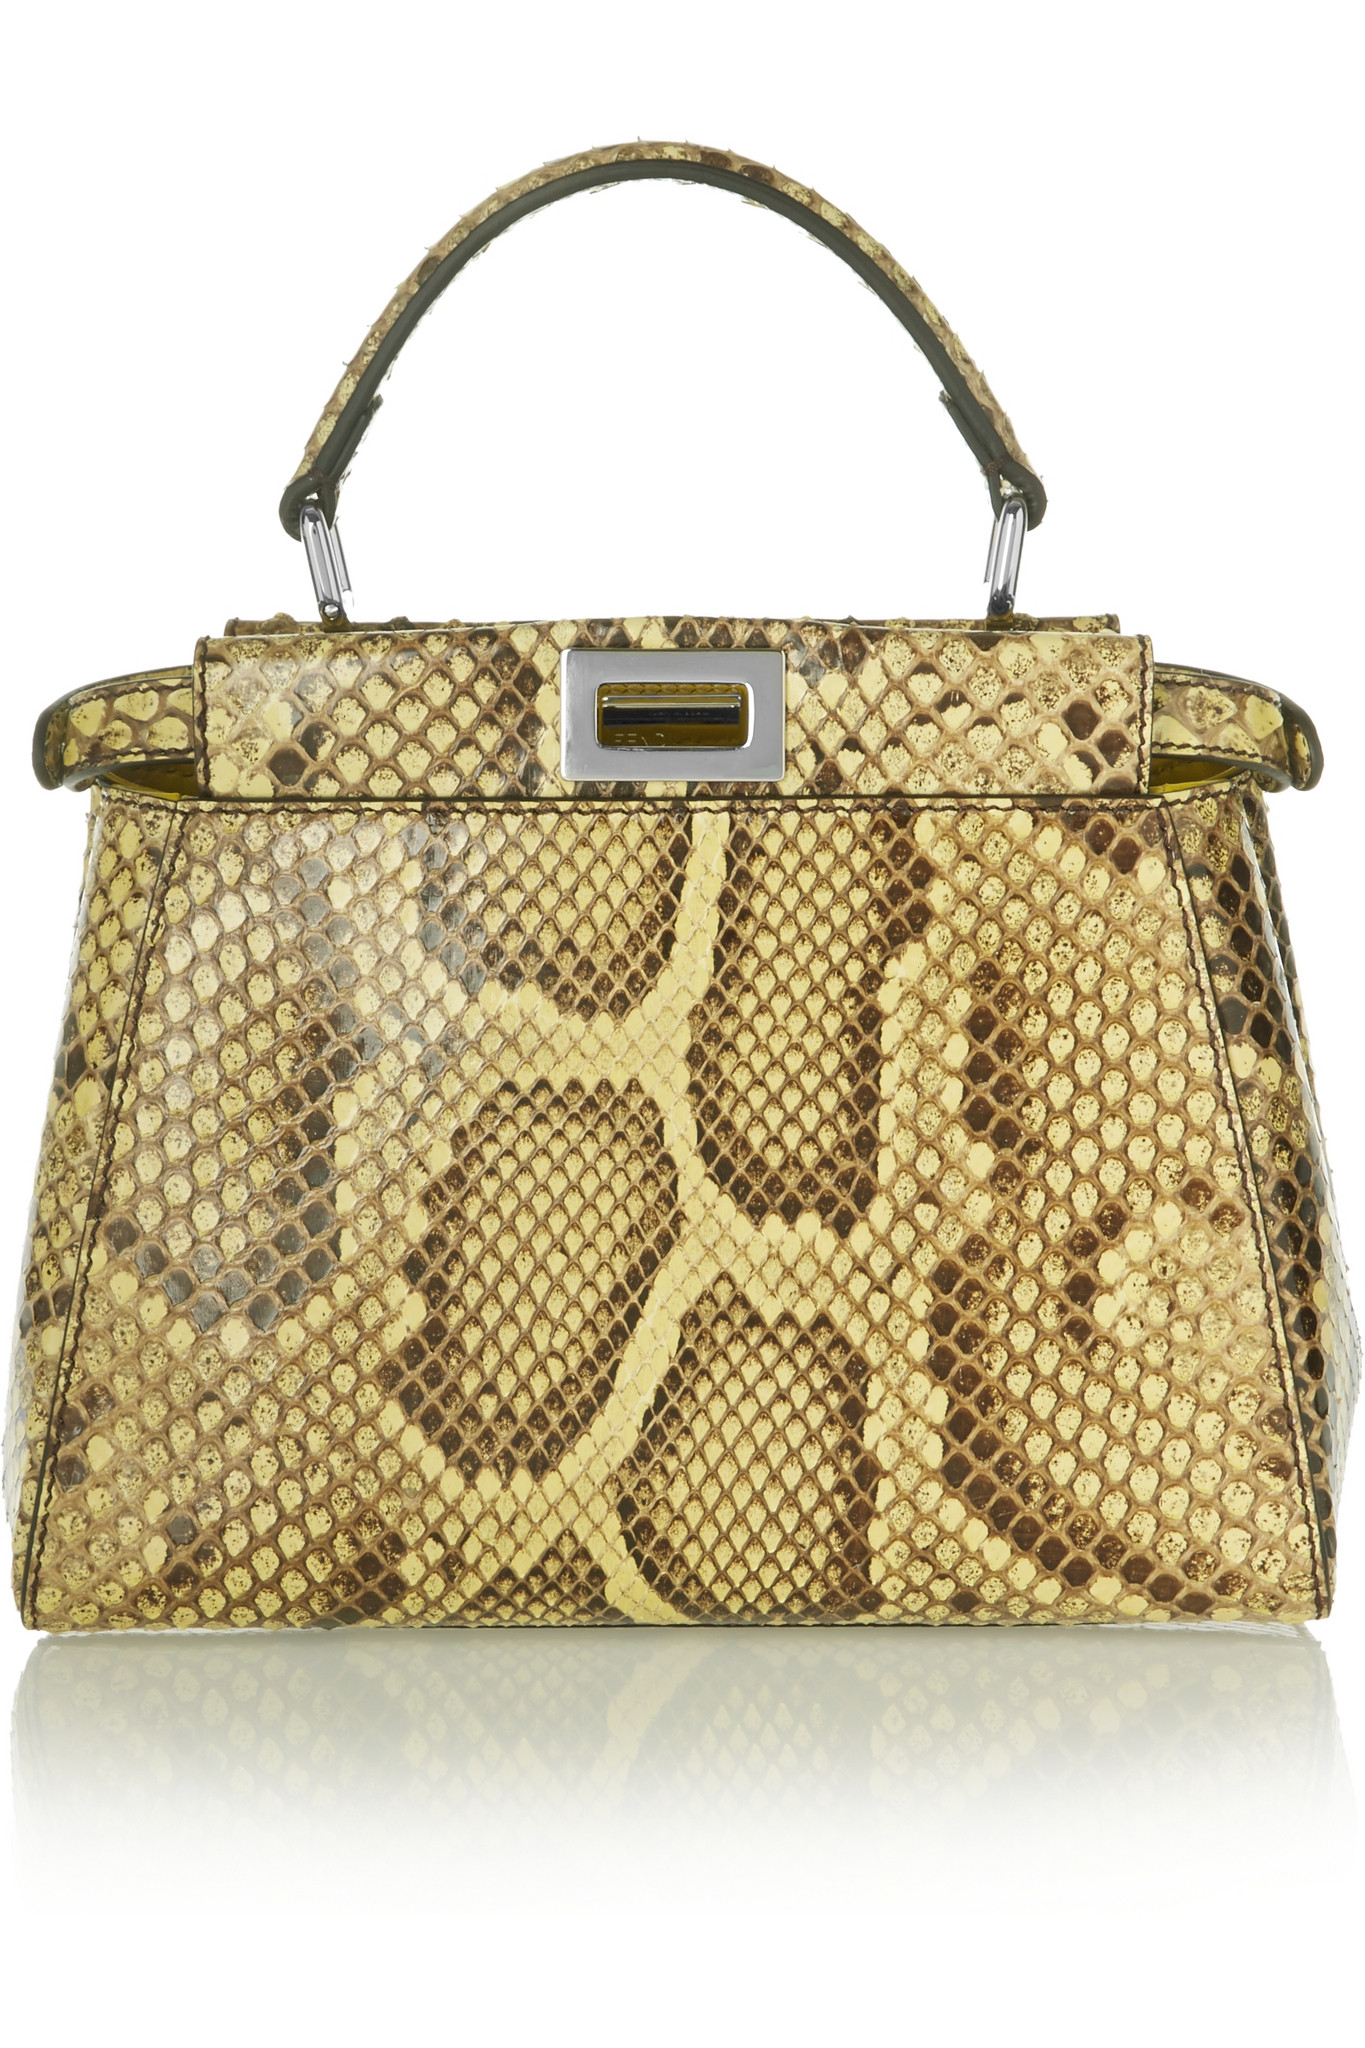 Fendi Peekaboo Mini Python Shoulder Bag in Yellow - Lyst 67cf6b8fa6292